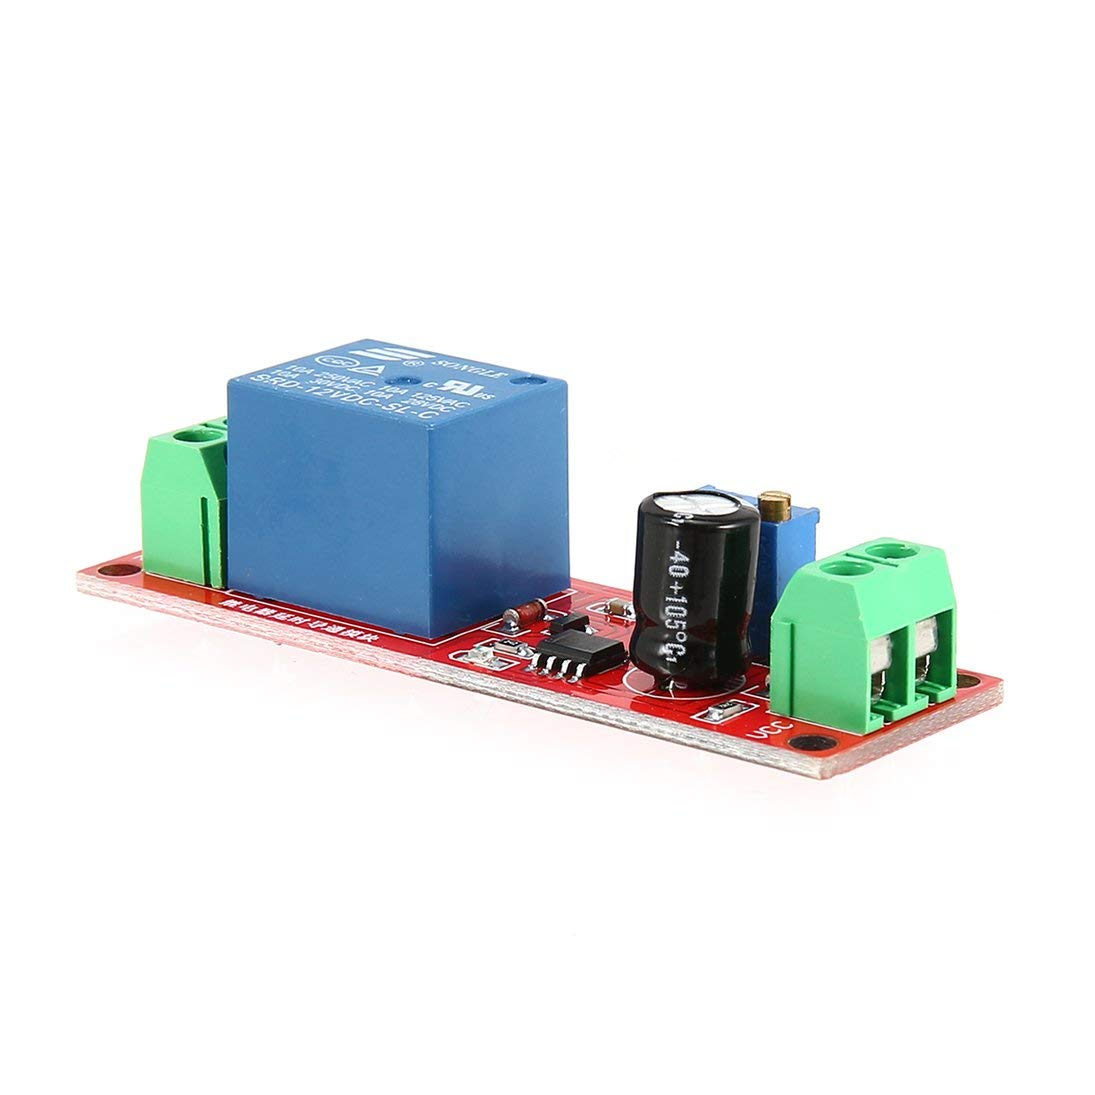 Baynne DC 12V NE555 Monostable Delay Relay Circuit Conduction Module Trigger Switch Timer Adjustable Time Shield Electronics Arduino by Baynne (Image #6)